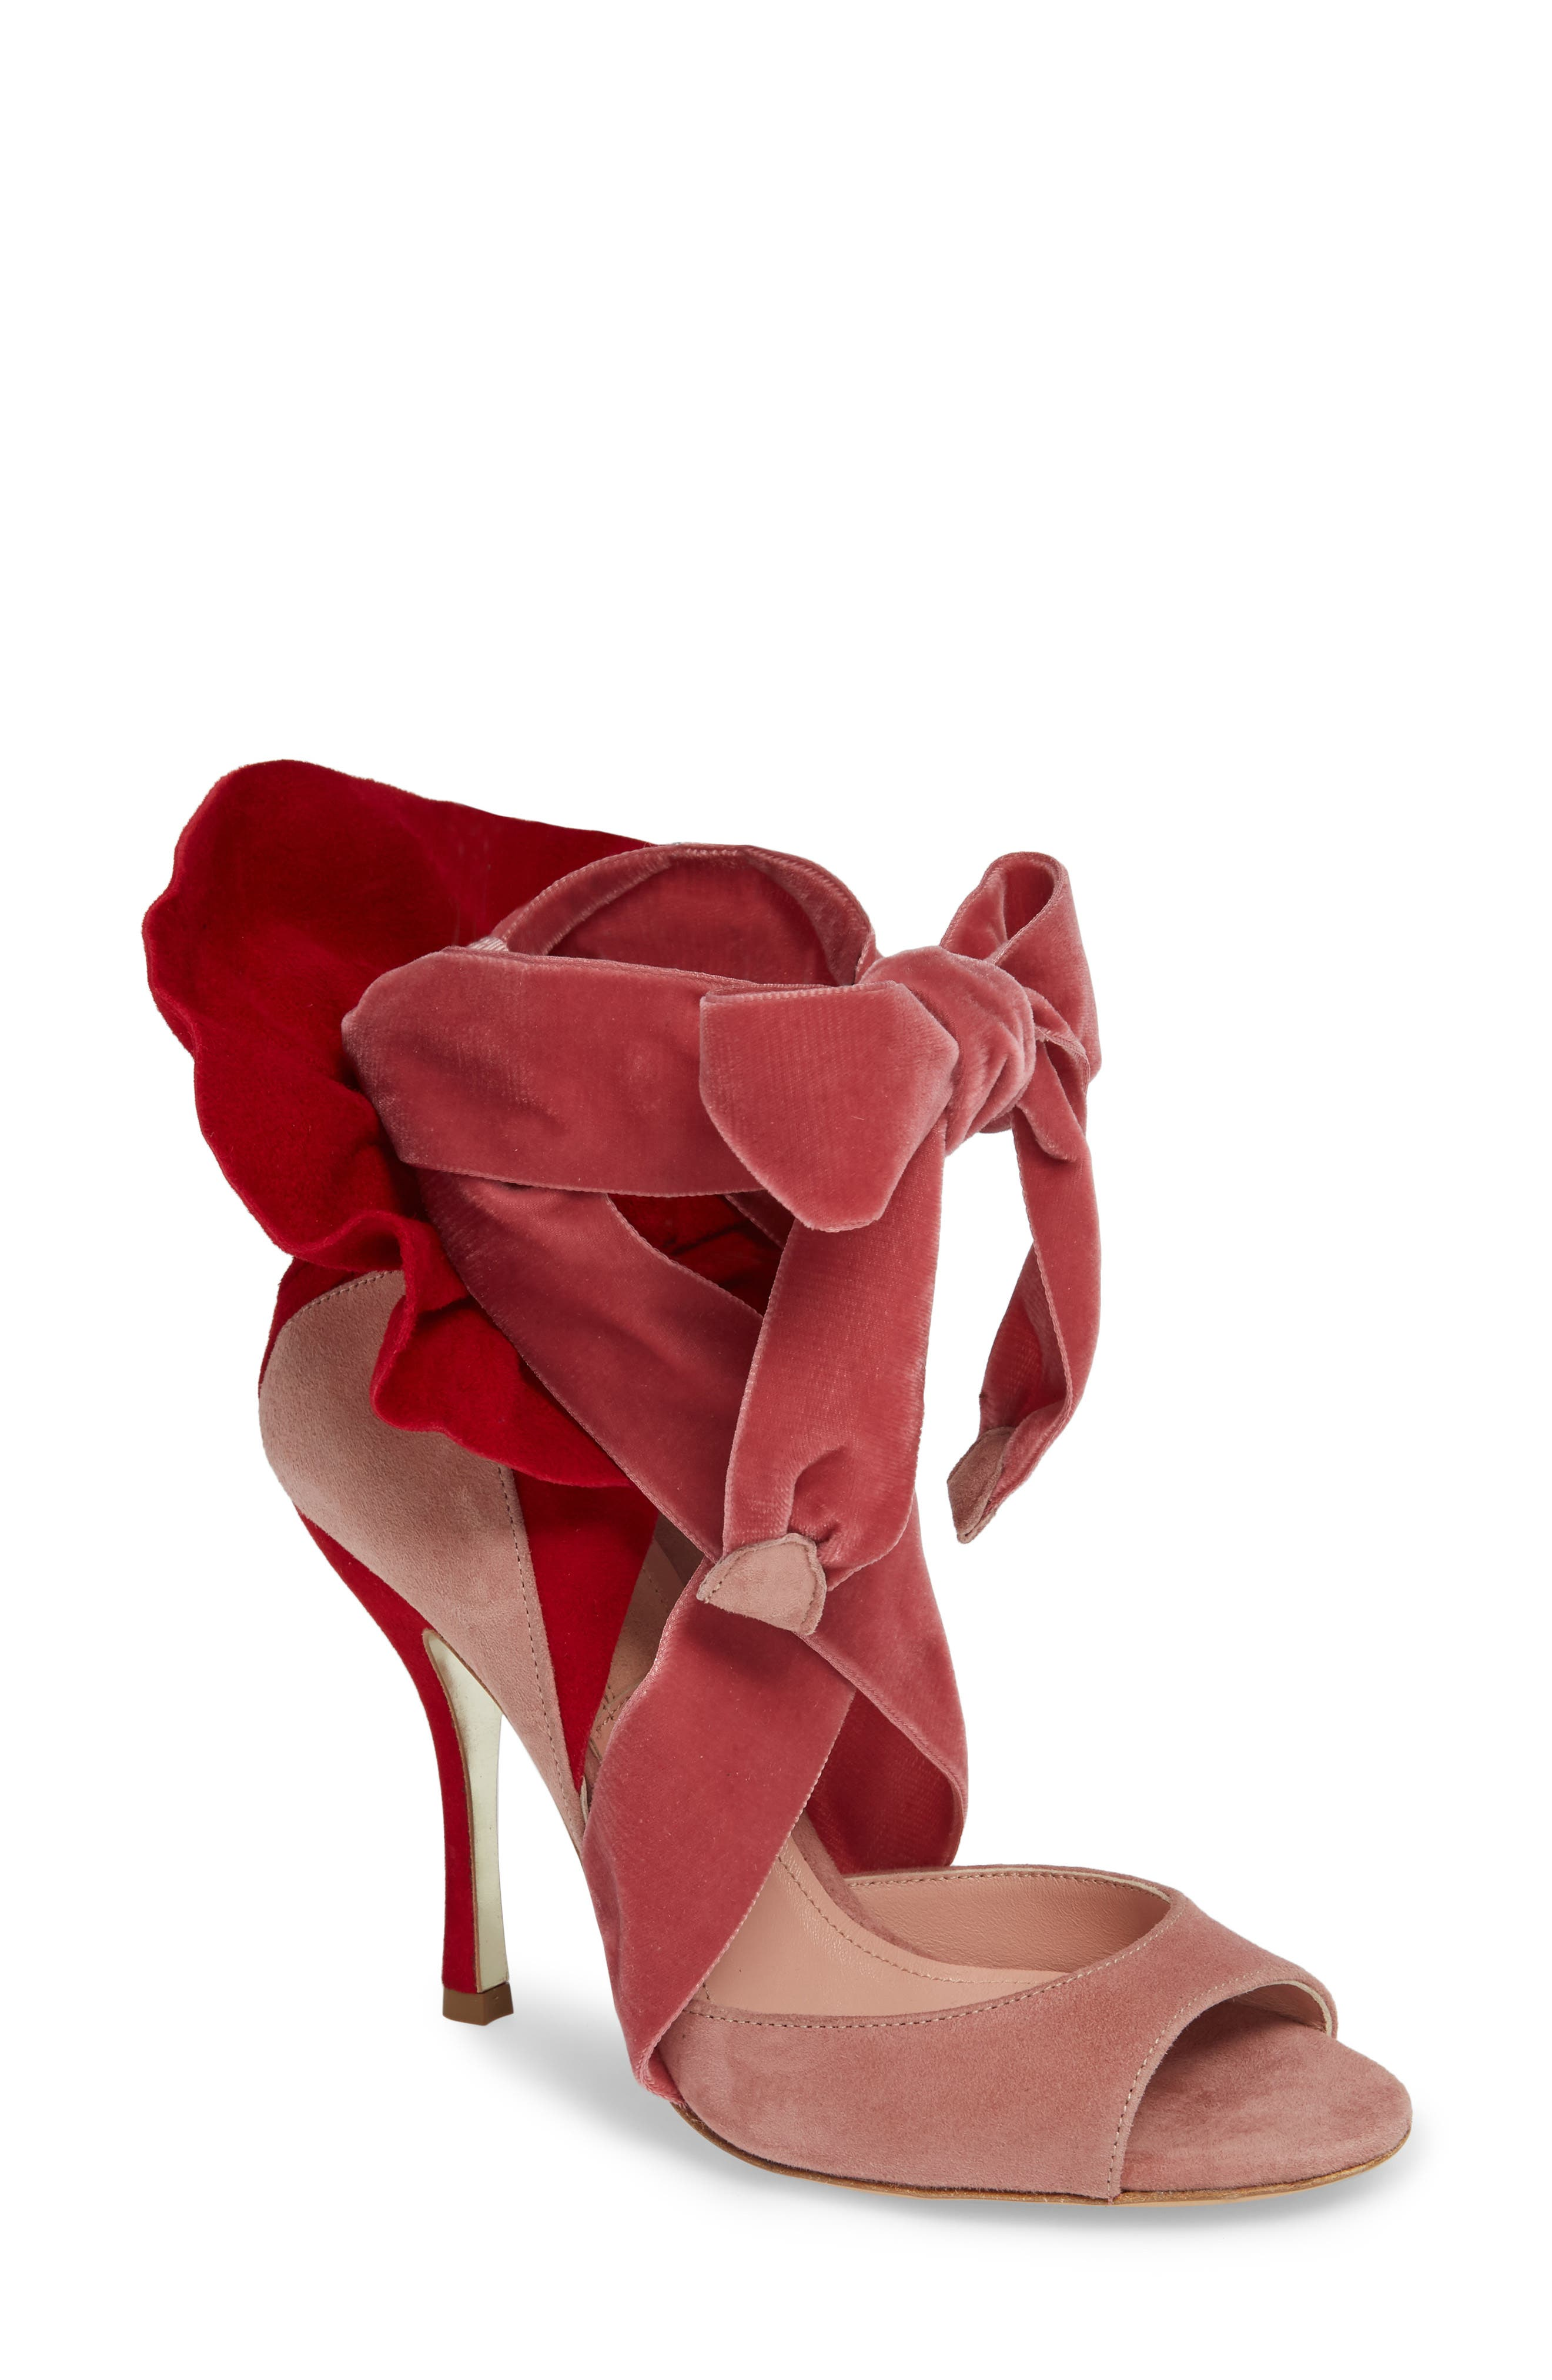 Frills For All Sandal,                             Main thumbnail 1, color,                             Rose/ Red